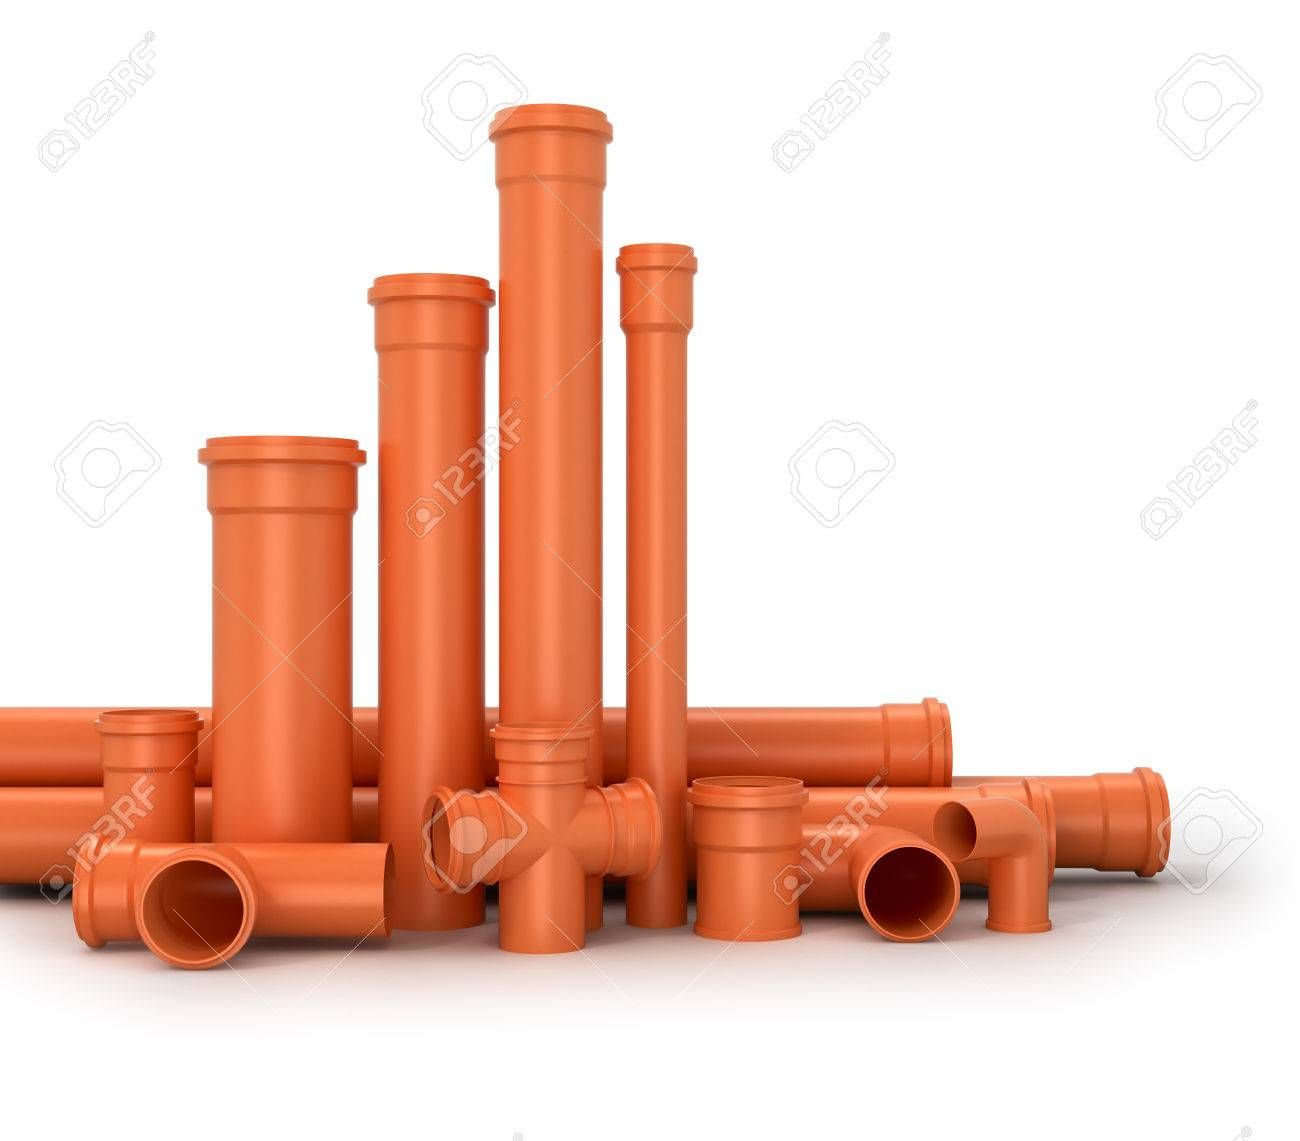 Plastic pipe on white background. Water pipes.3d illustration. Stock Illustration - 60015529  sc 1 st  123RF.com & Plastic Pipe On White Background. Water Pipes.3d Illustration. Stock ...